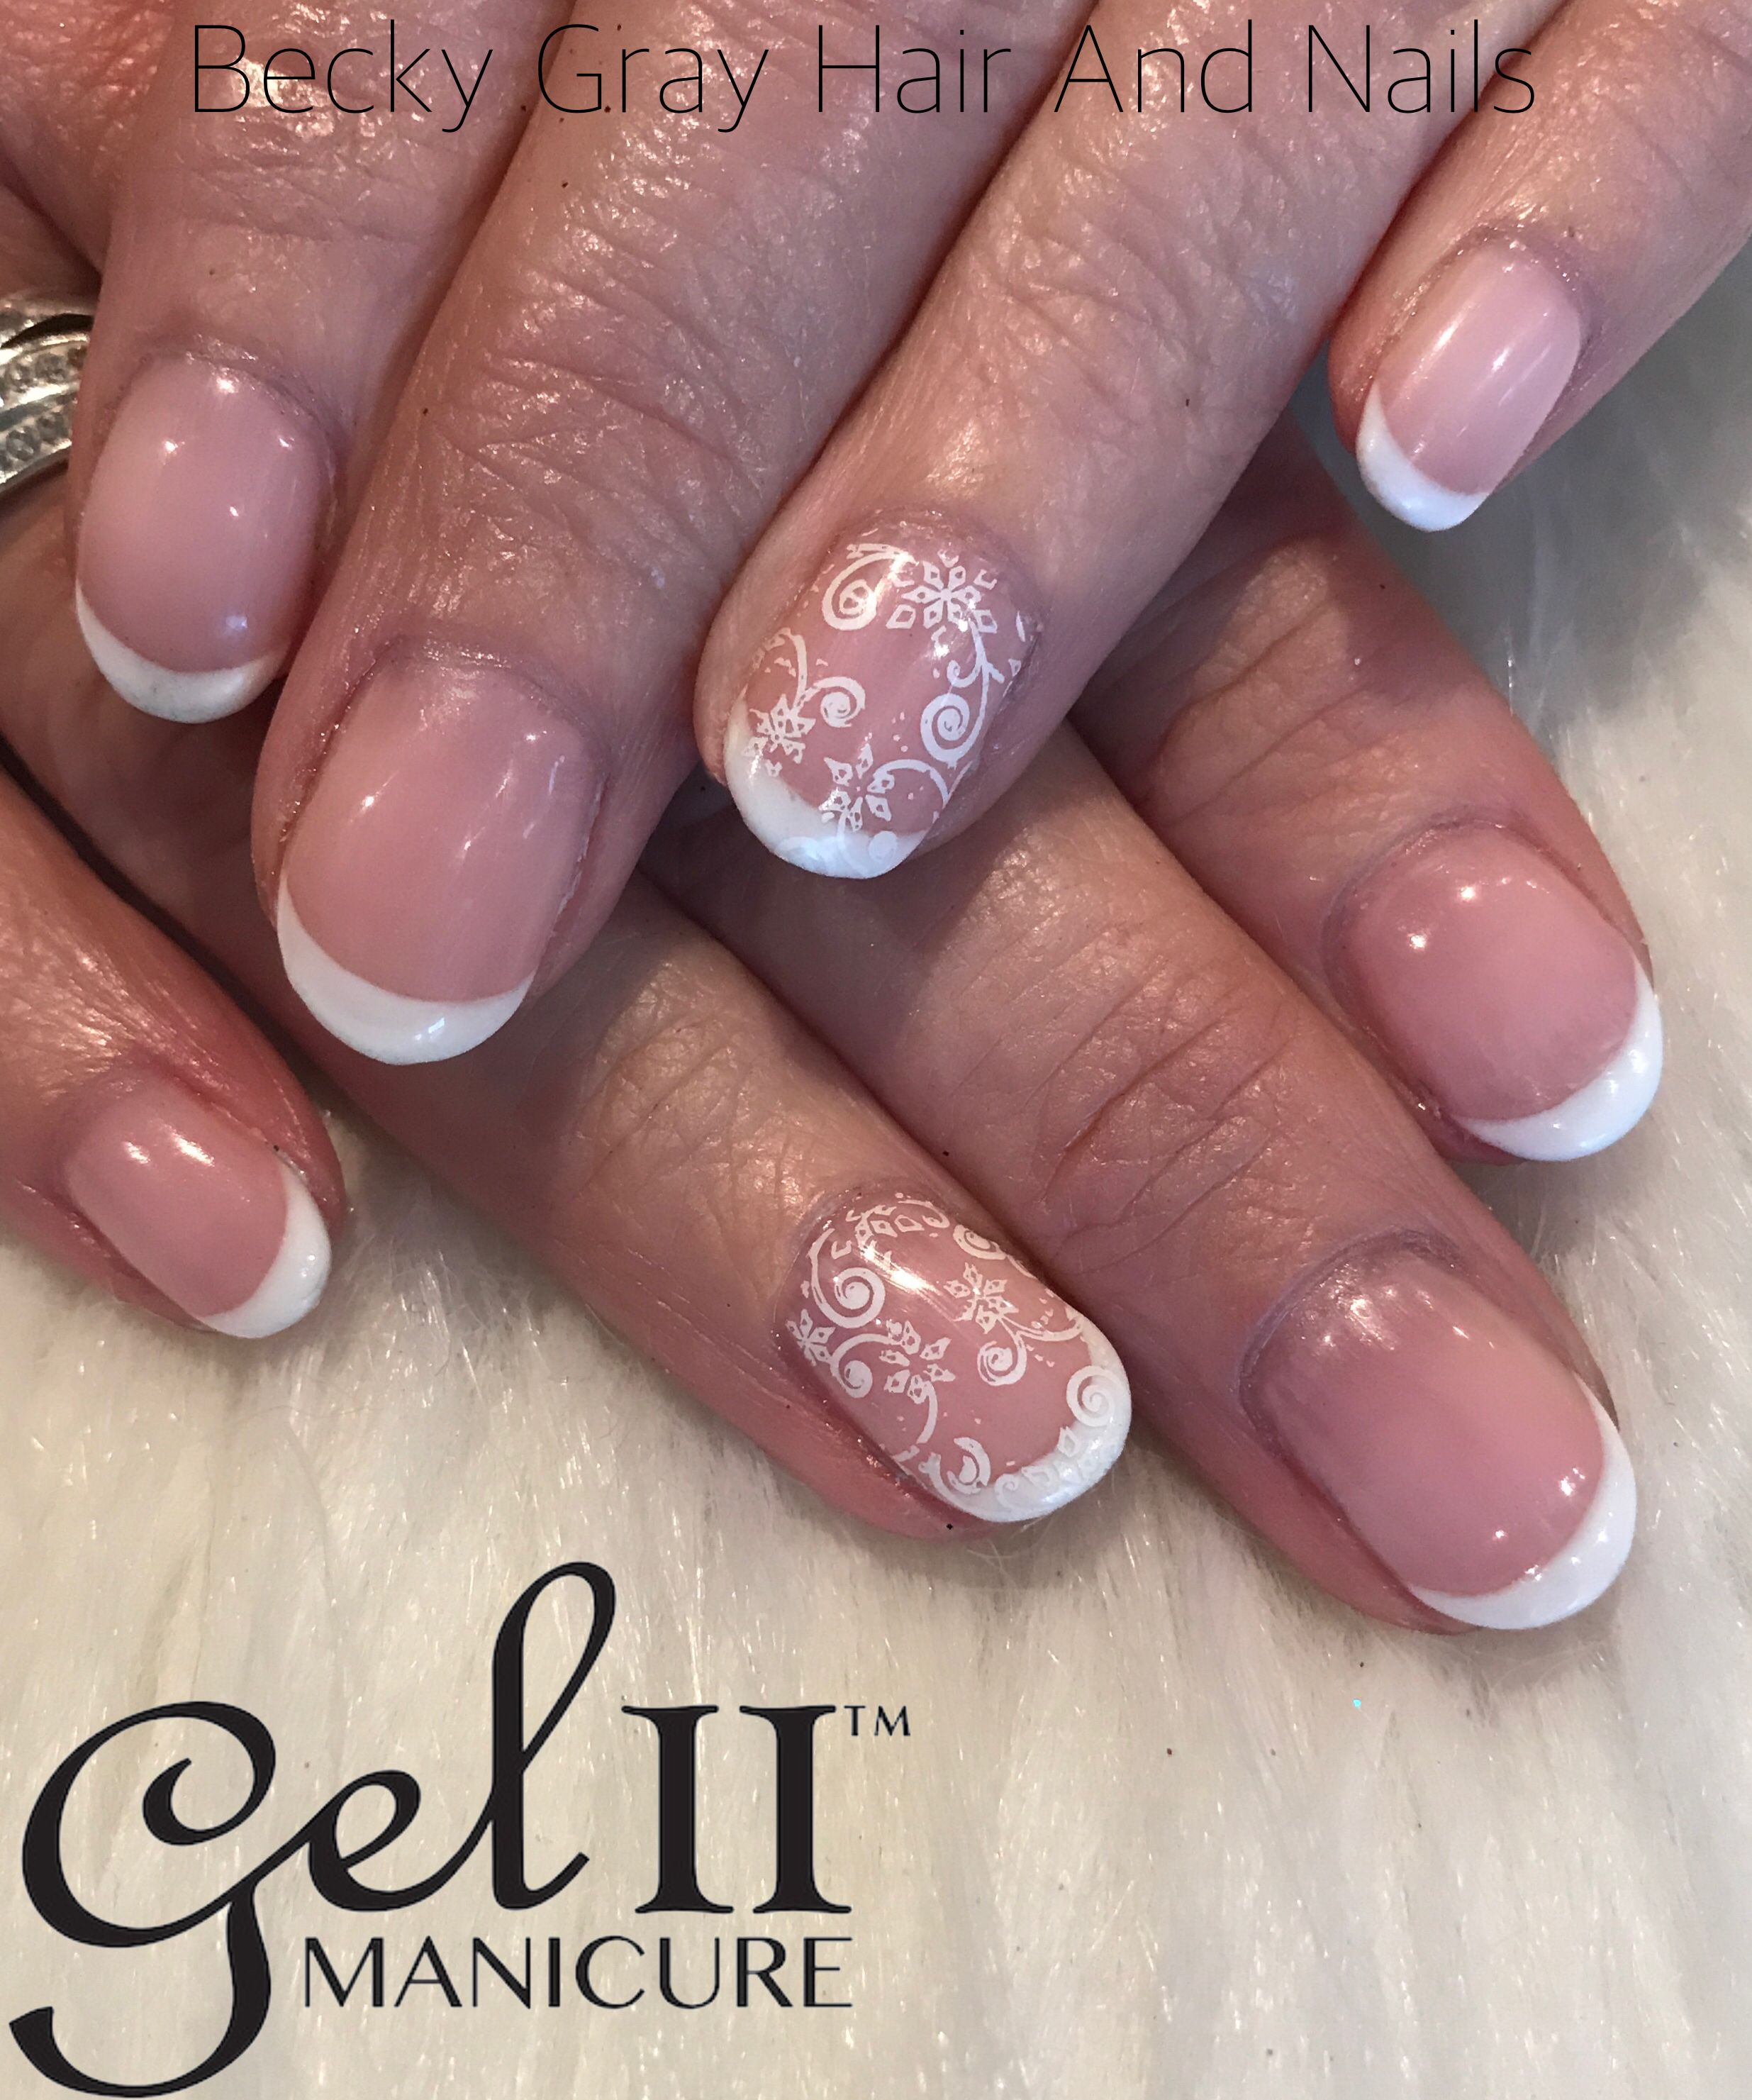 Gel ii manicure with snowflake nail art #gelii #geltwo #manicure ...